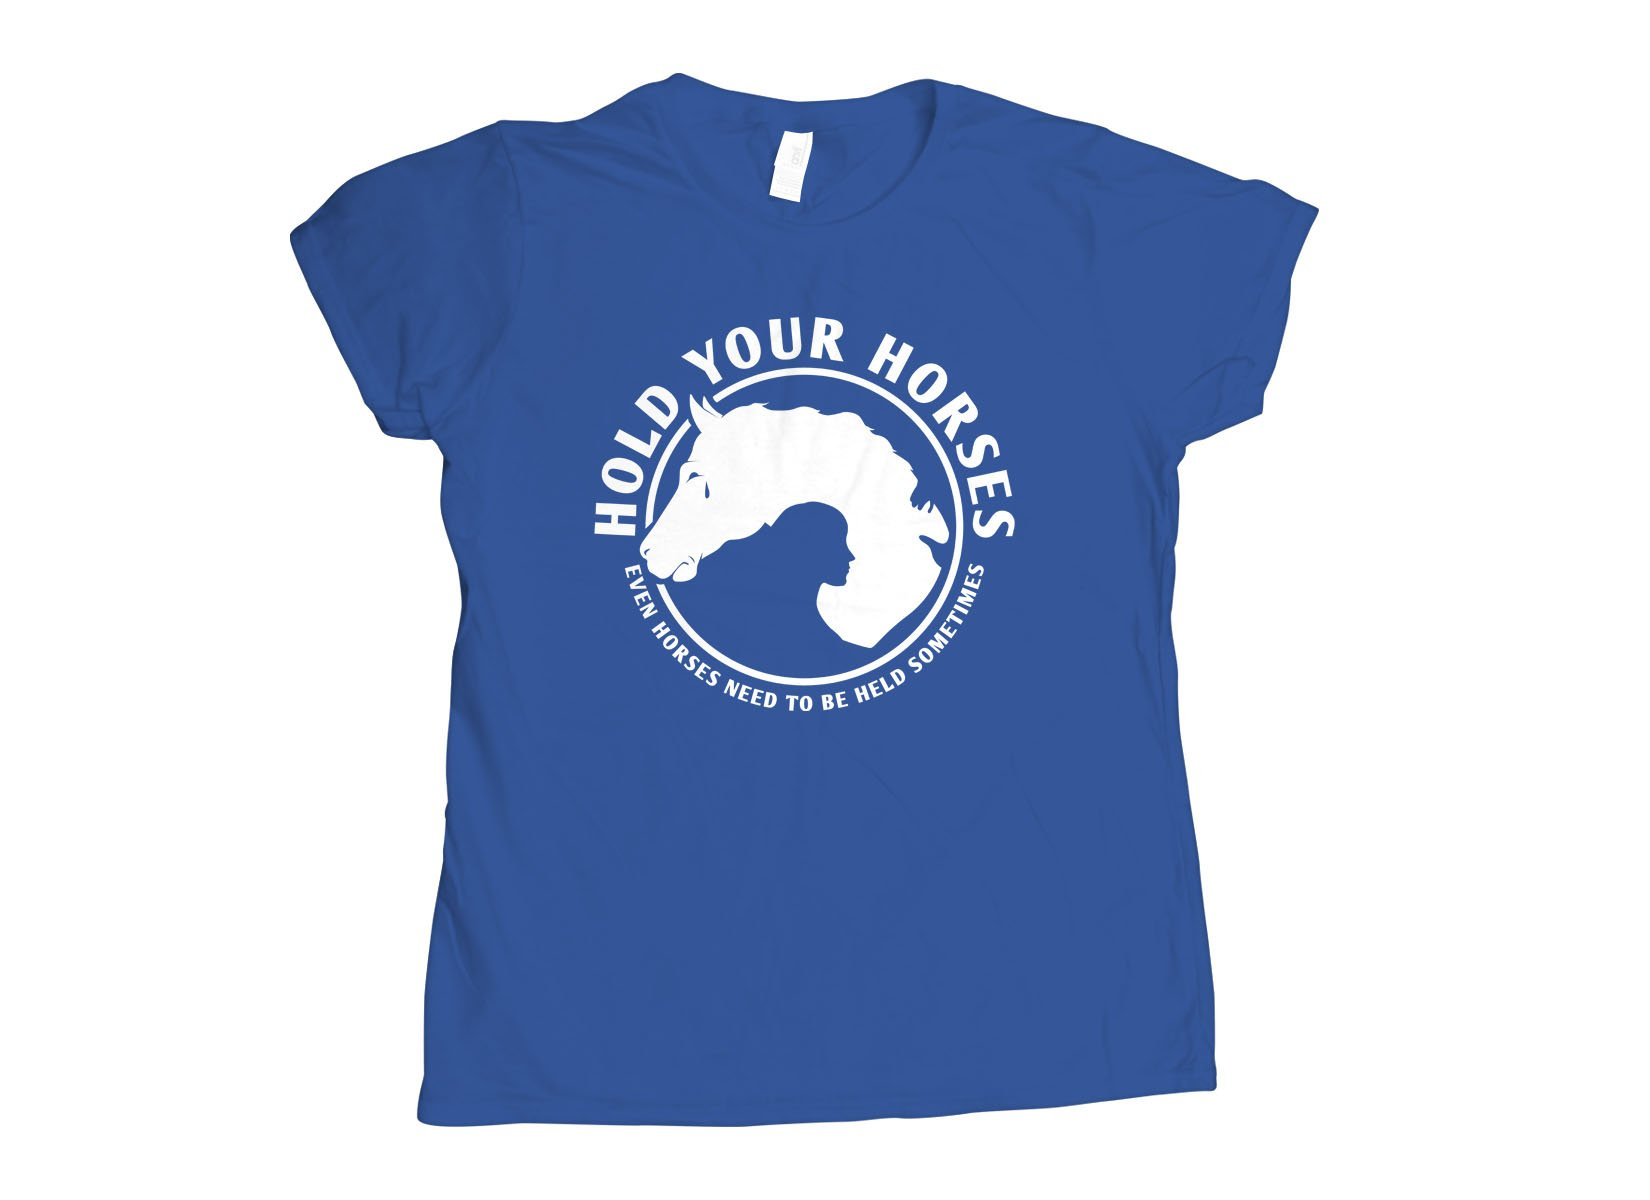 Hold Your Horses on Womens T-Shirt